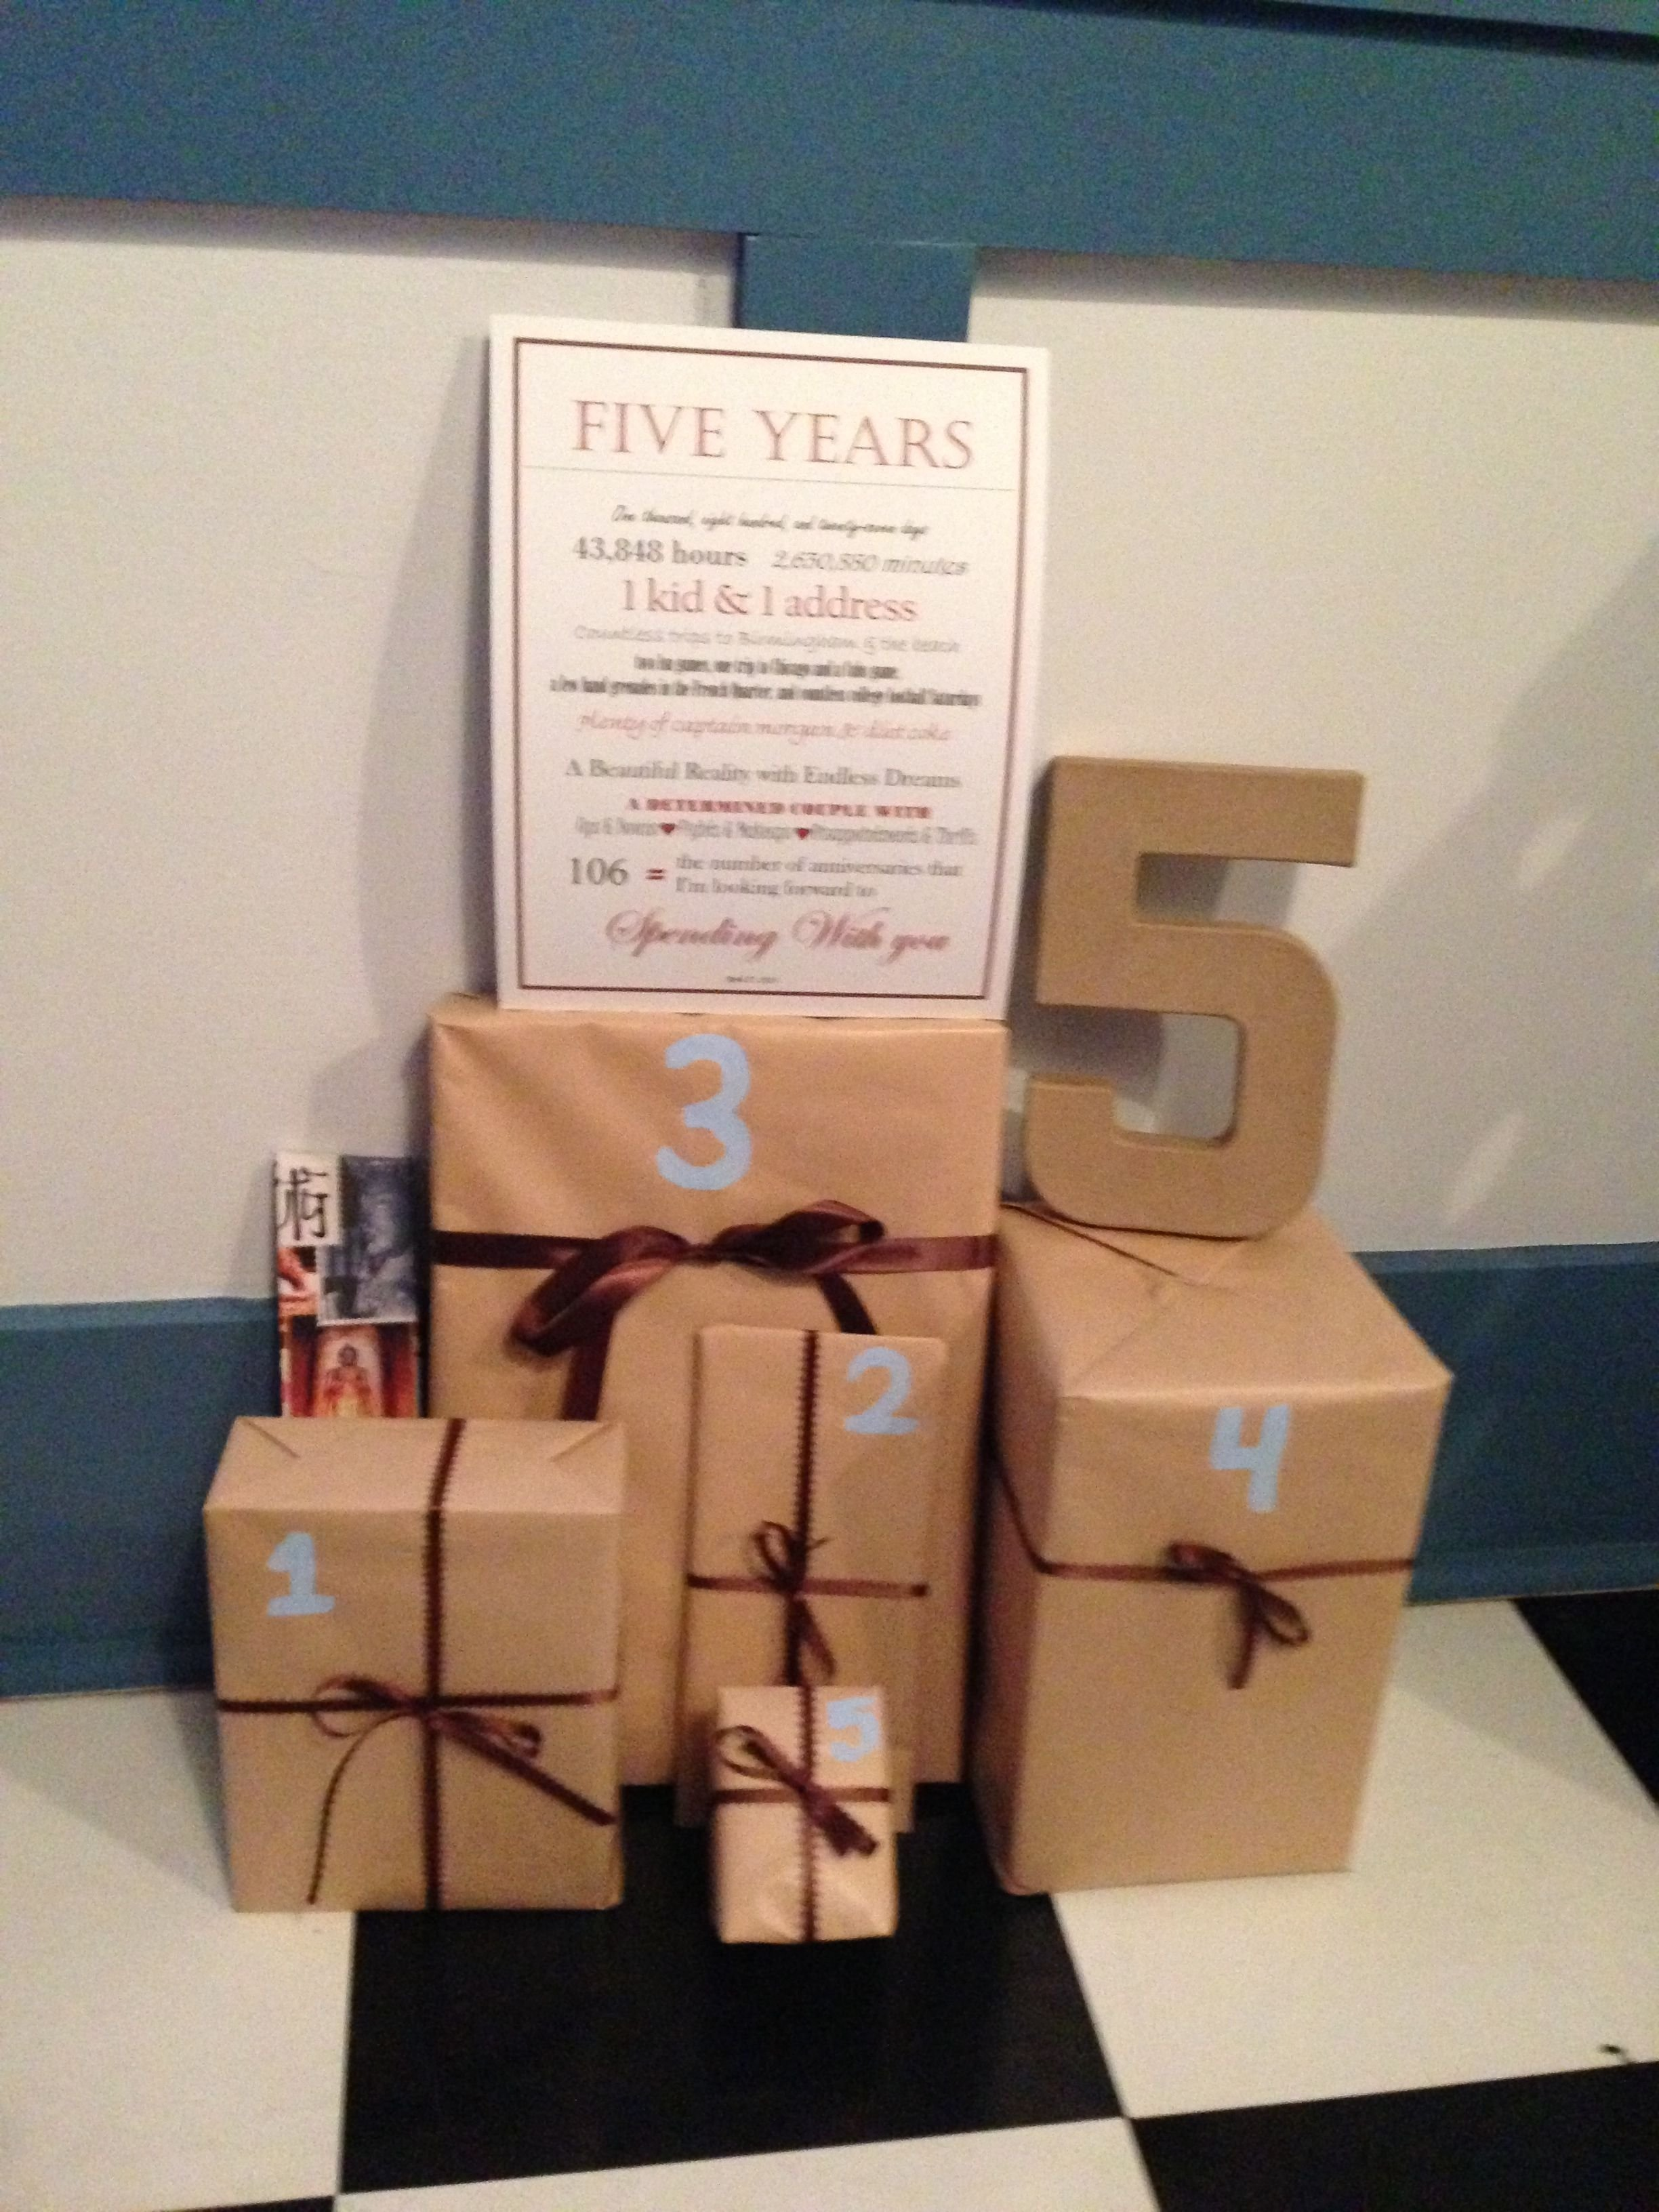 10 Elegant Anniversary Gifts Ideas For Him 5 year anniversary 1 gift that reminds you of each year of marriage 8 2020